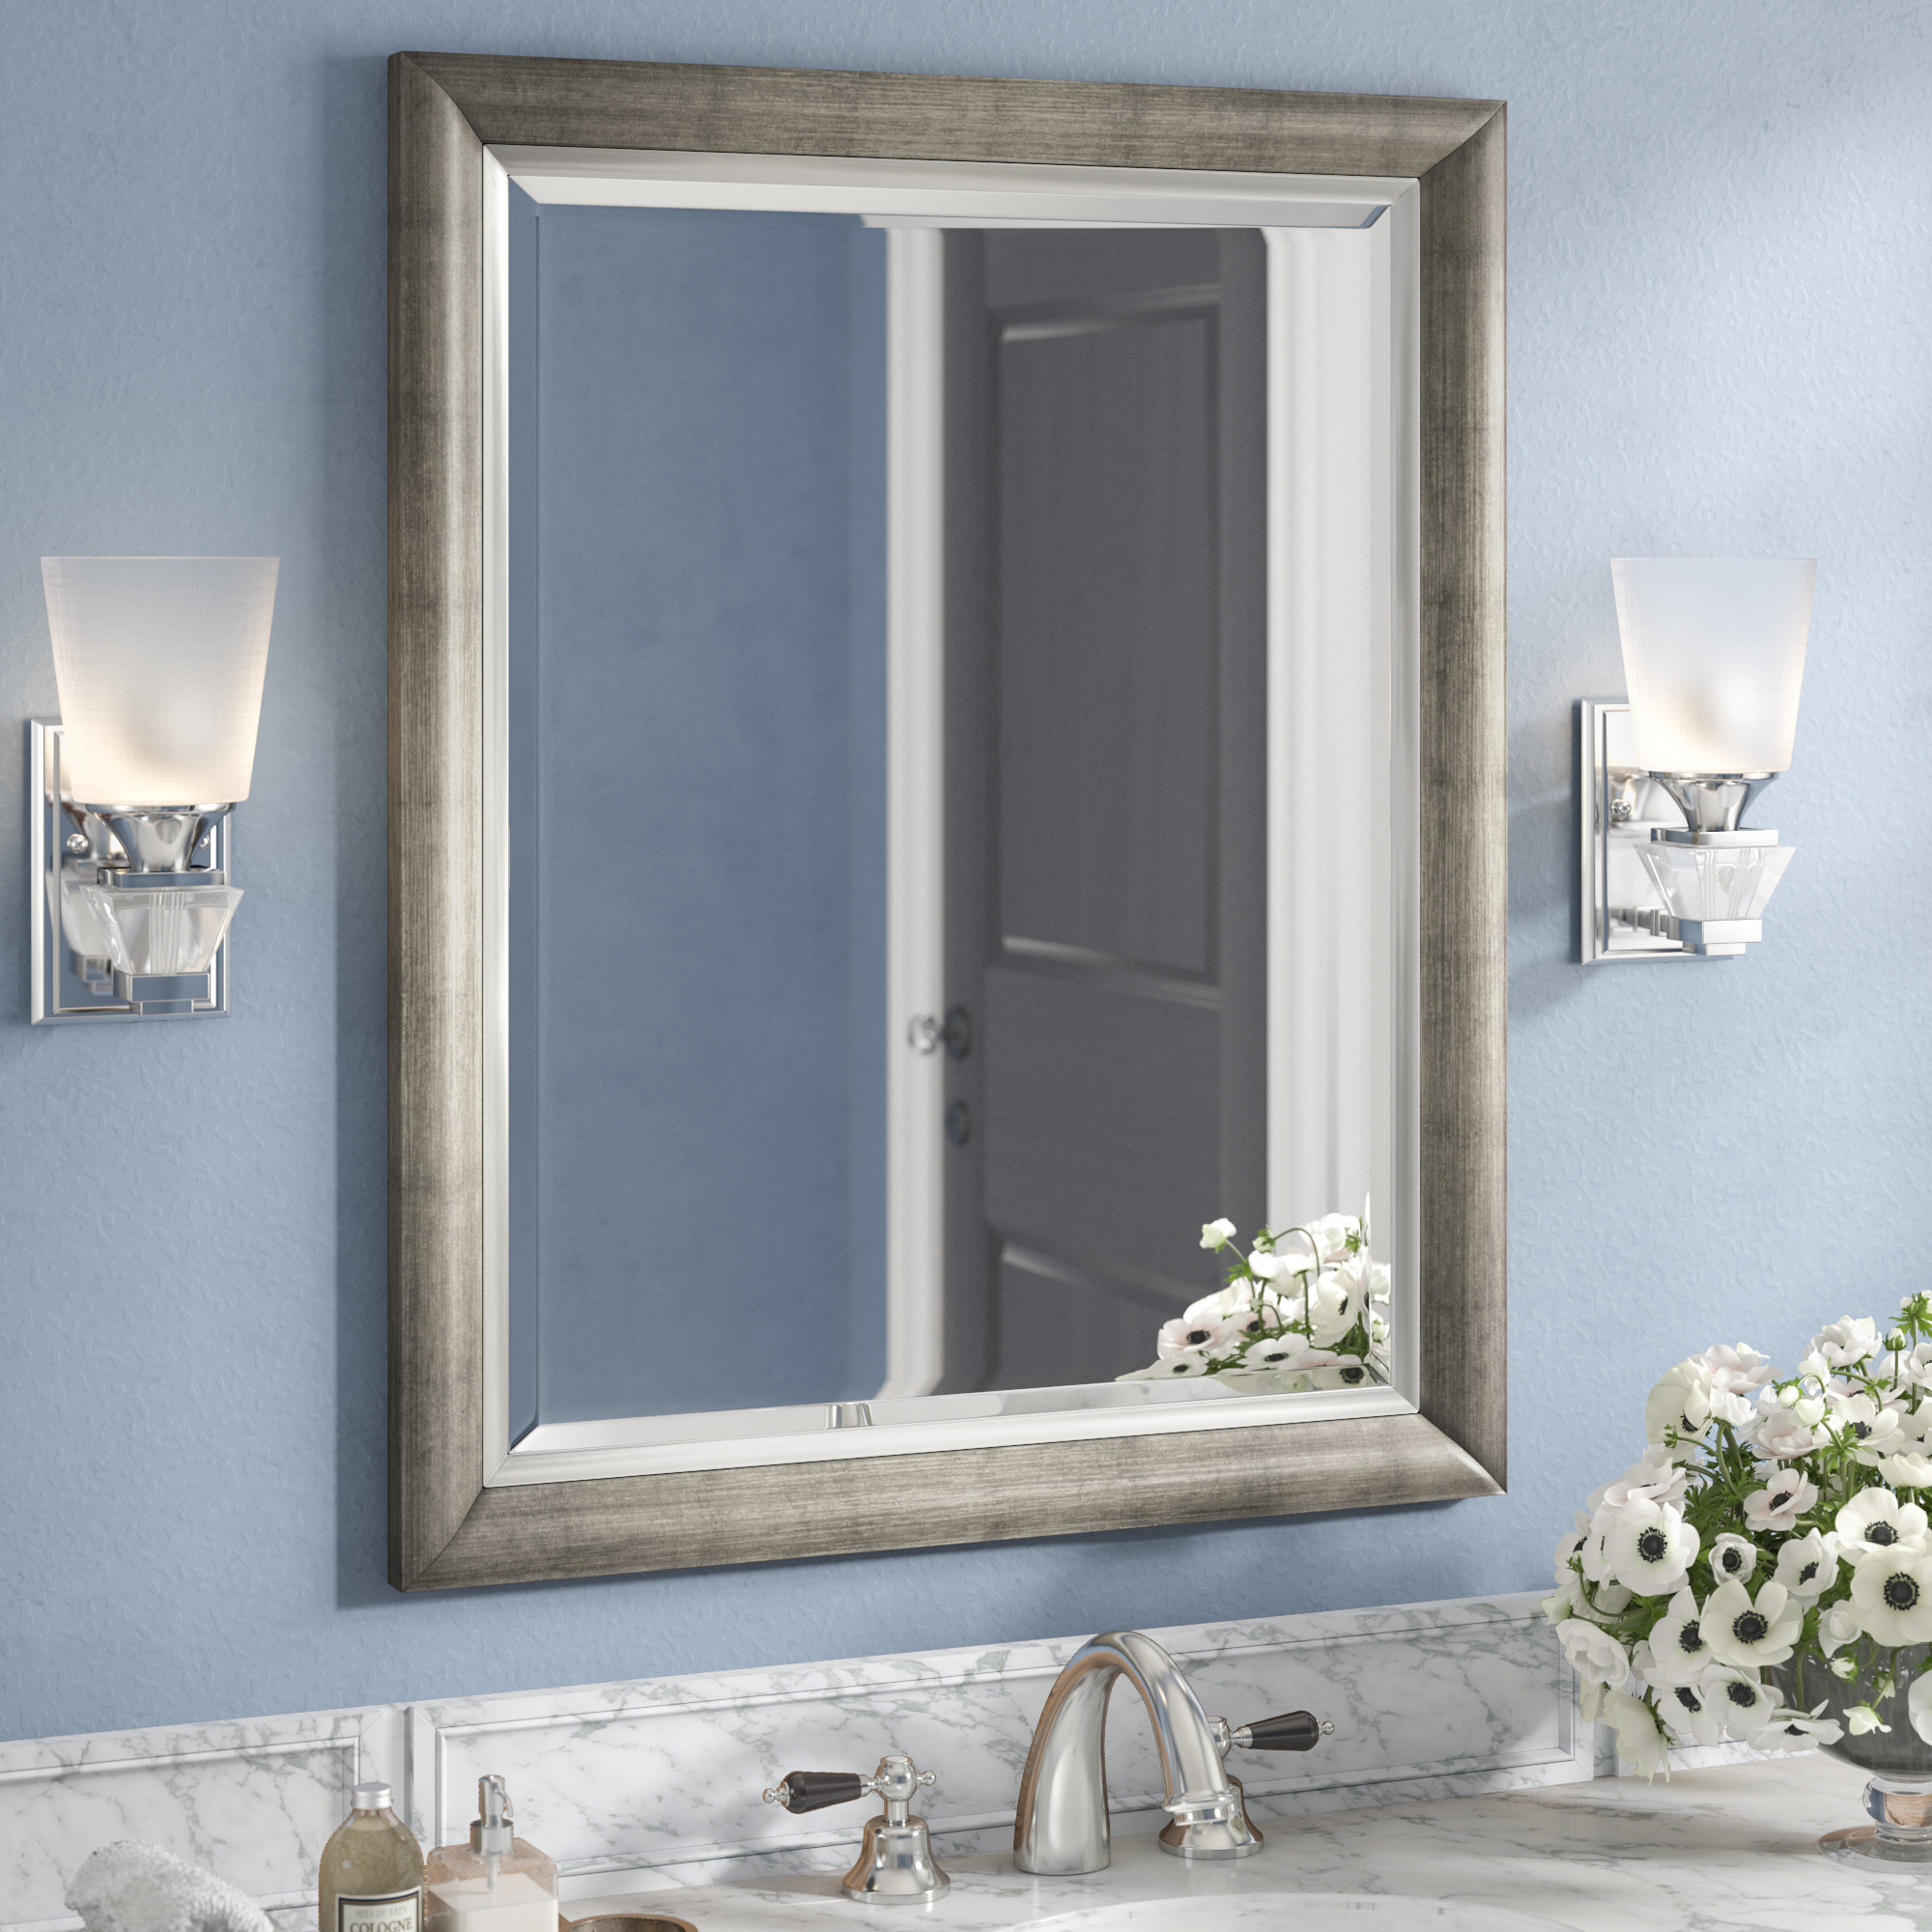 Wall Mirror With Regard To Epinal Shabby Elegance Wall Mirrors (View 29 of 30)